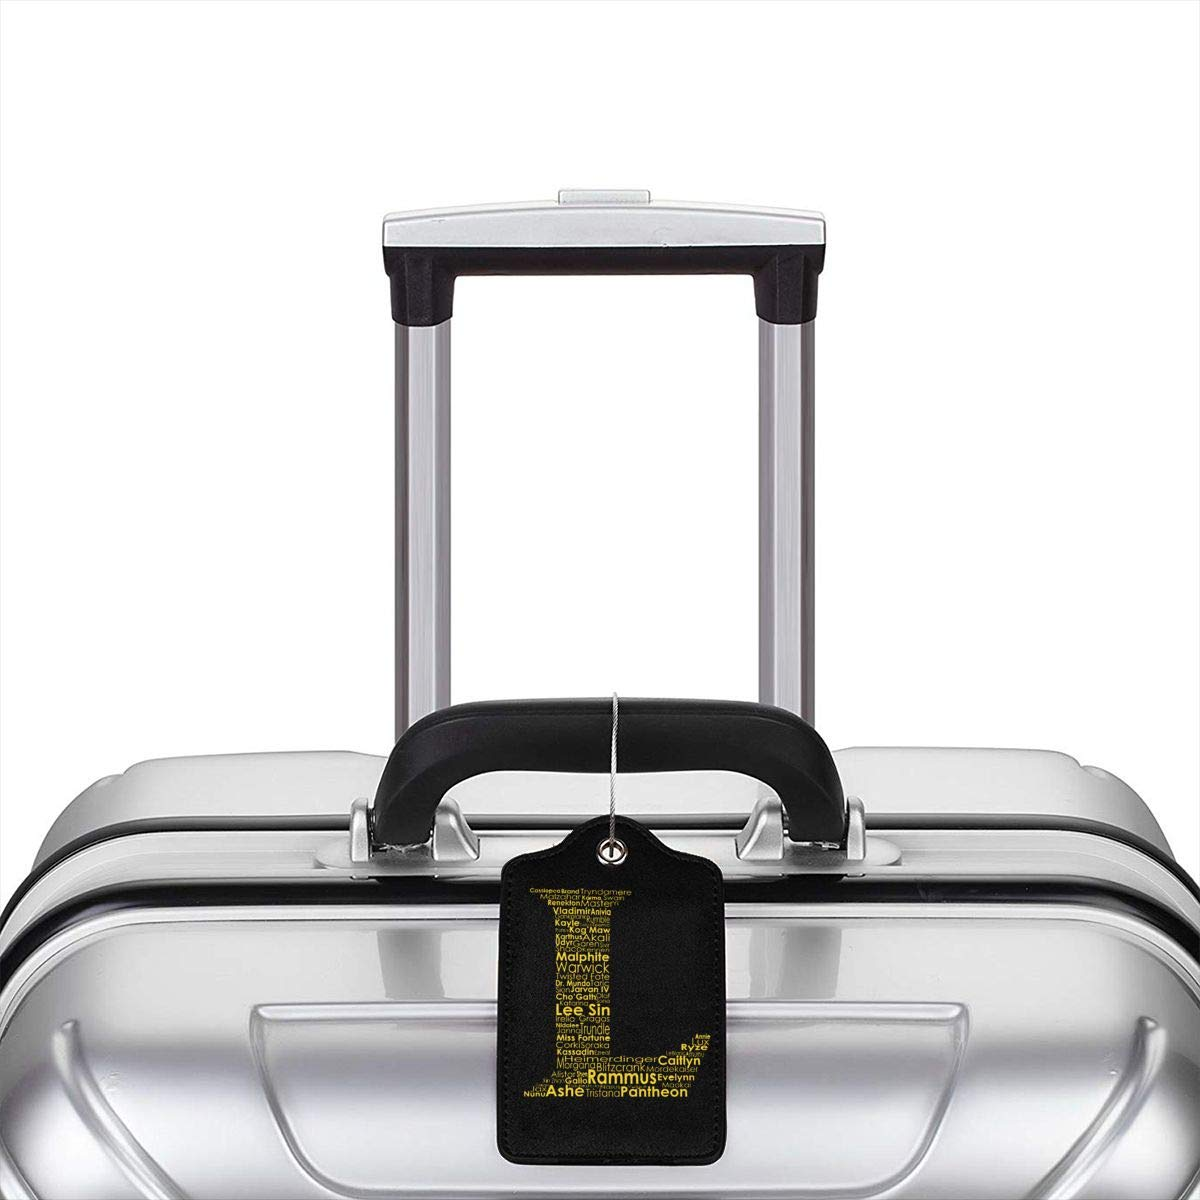 Video Game League Of Legends L Logo Leather Luggage Tag Travel ID Label For Baggage Suitcase